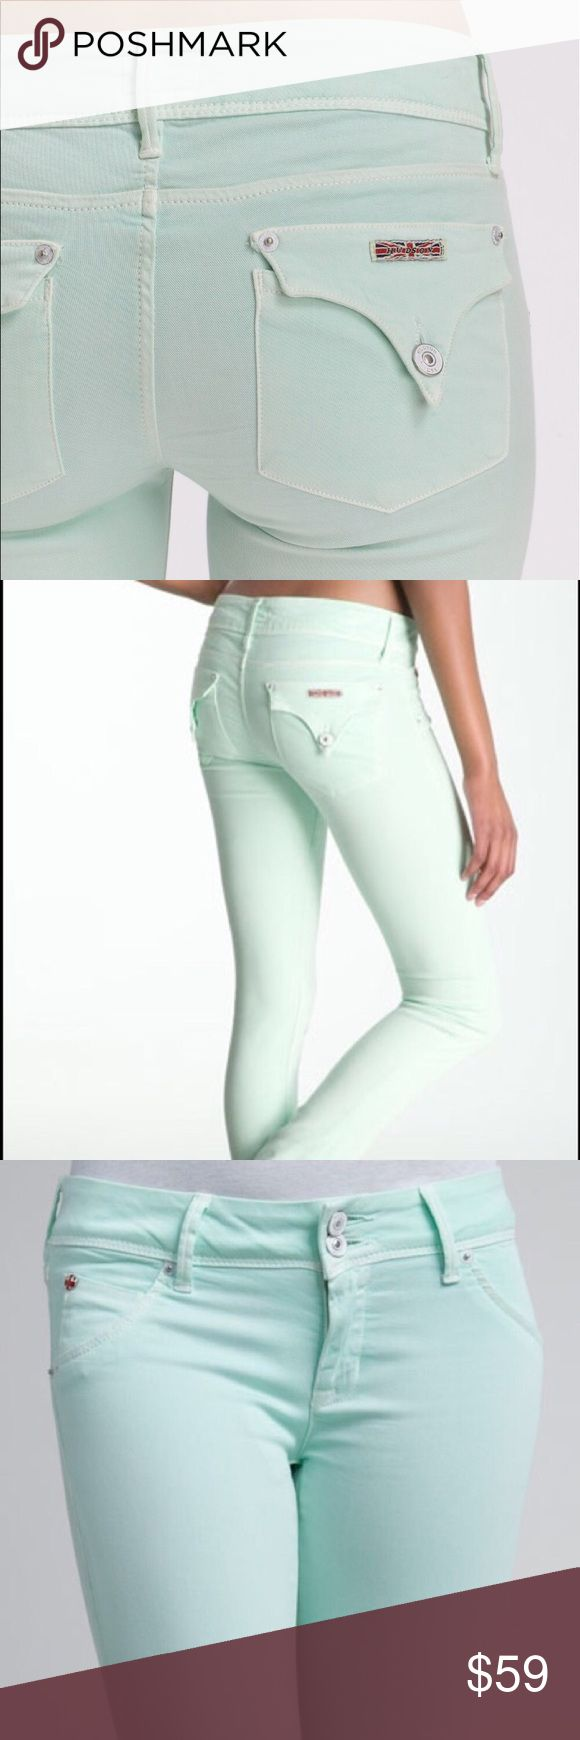 Hudson Mint Green Jeans. Size 26 Hudson Mint Green Jeans. Size 26.  Sup r cute and great for all year. Worn once and washed once. Excellent condition.   Bundle 2 or more items and save 25%. Hudson Jeans Jeans Skinny